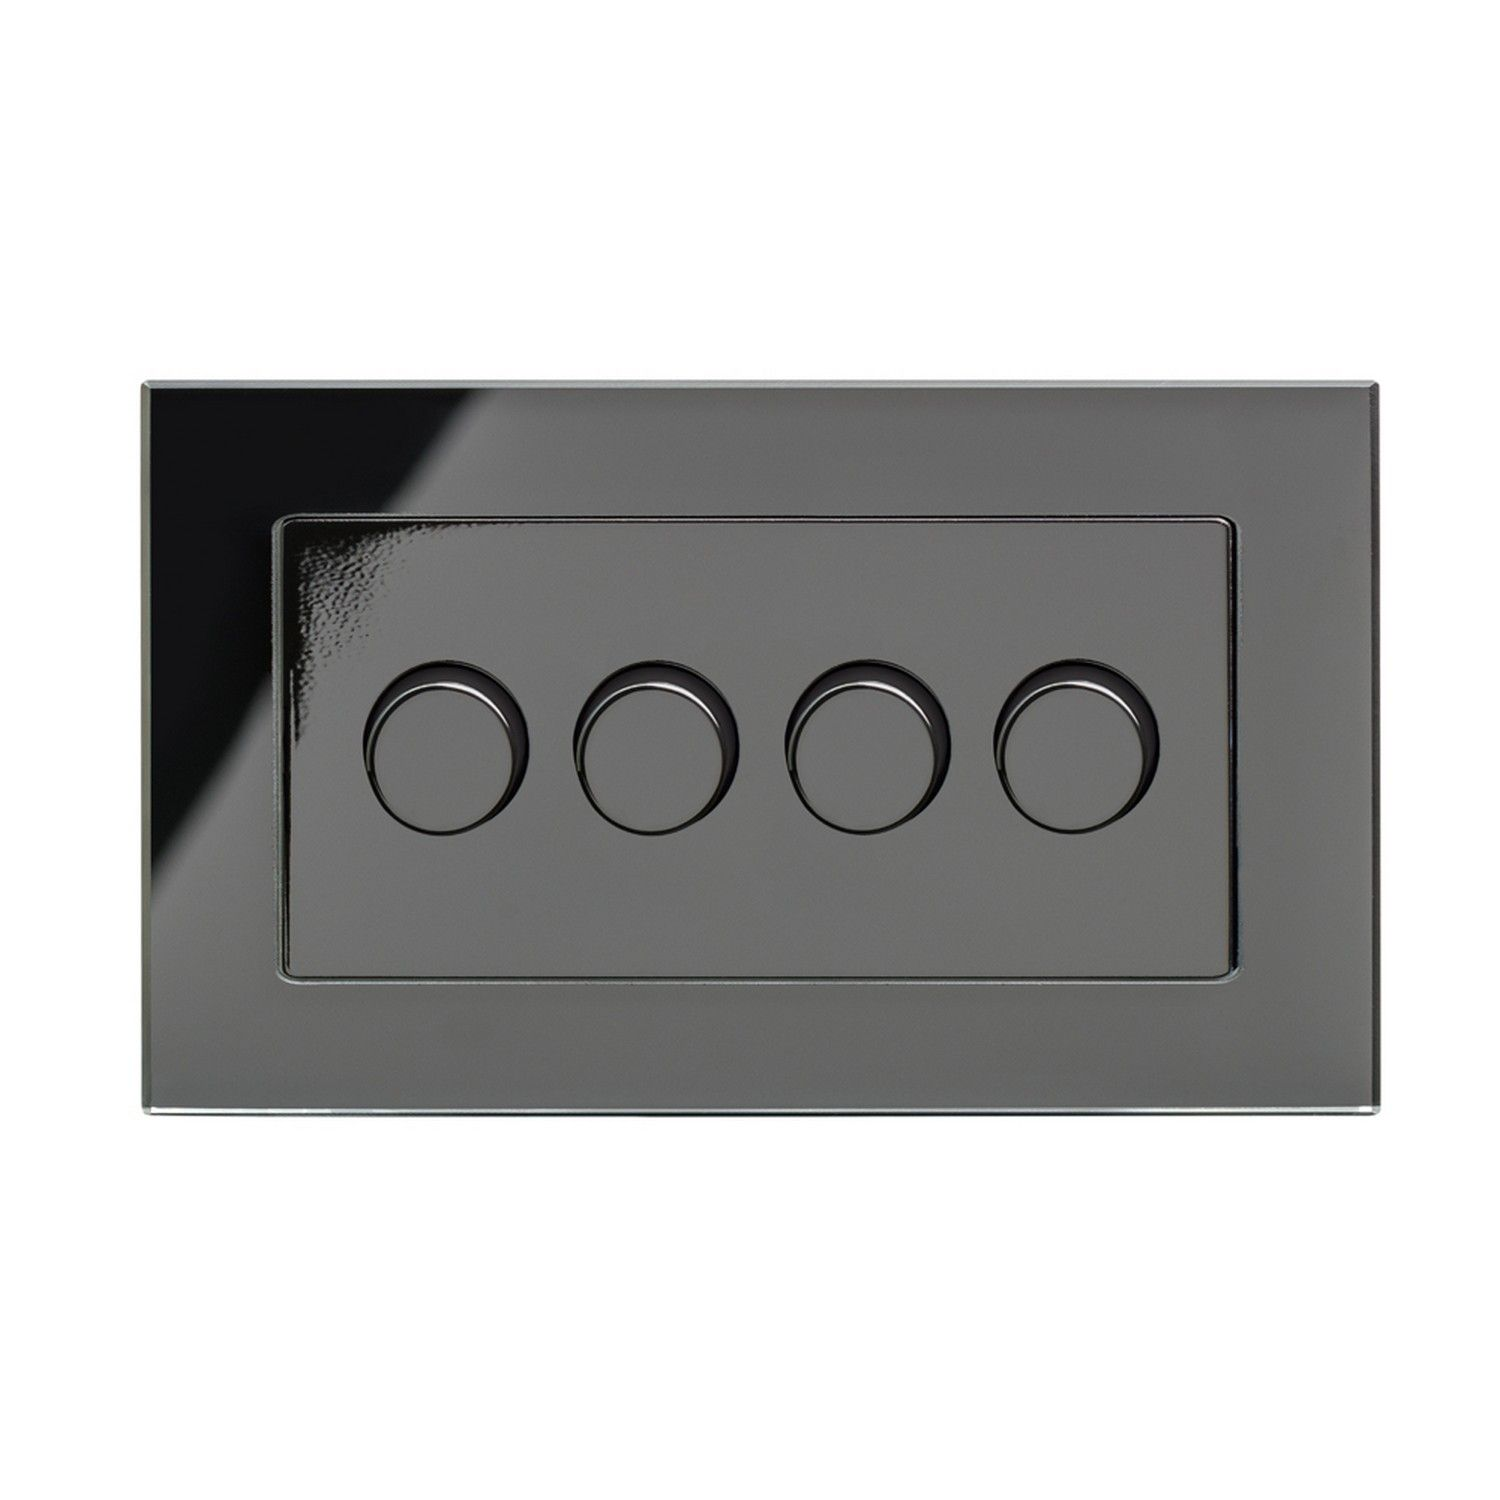 retrotouch 4 gang 2 way dimmer switch 3 200w led halogen black gl pg 02103